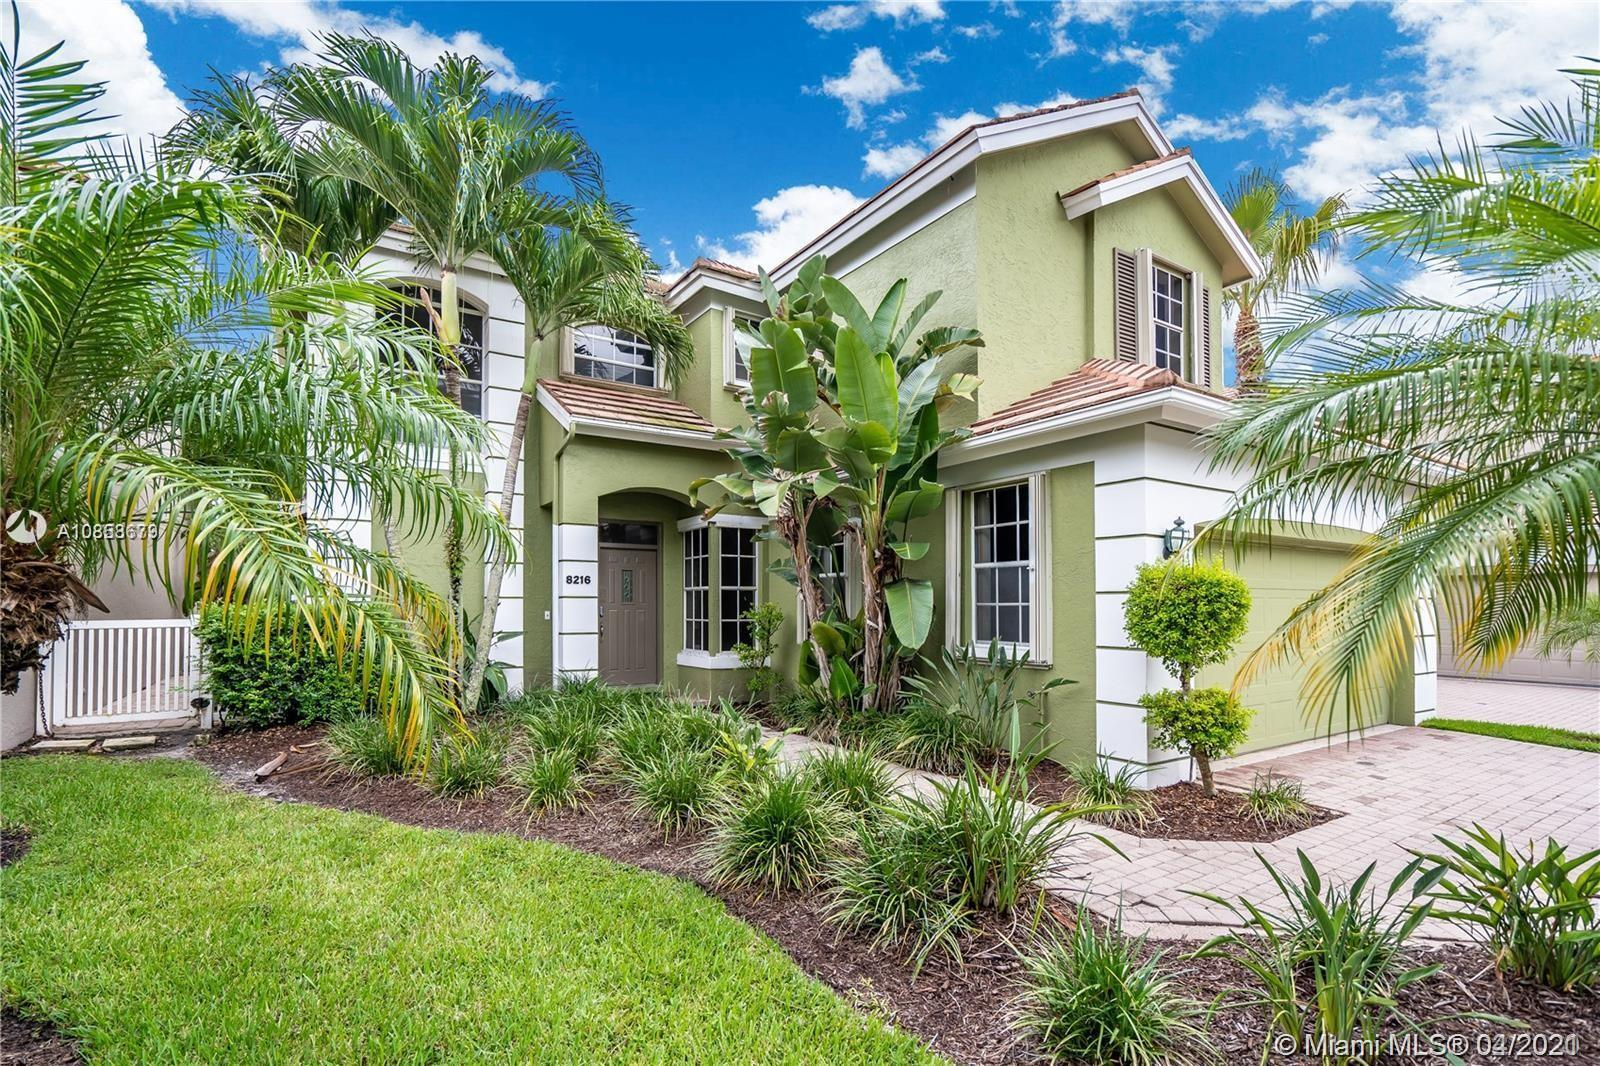 There is a $50,000 membership mandatory to purchase this home. This membership is paid ONE time. The